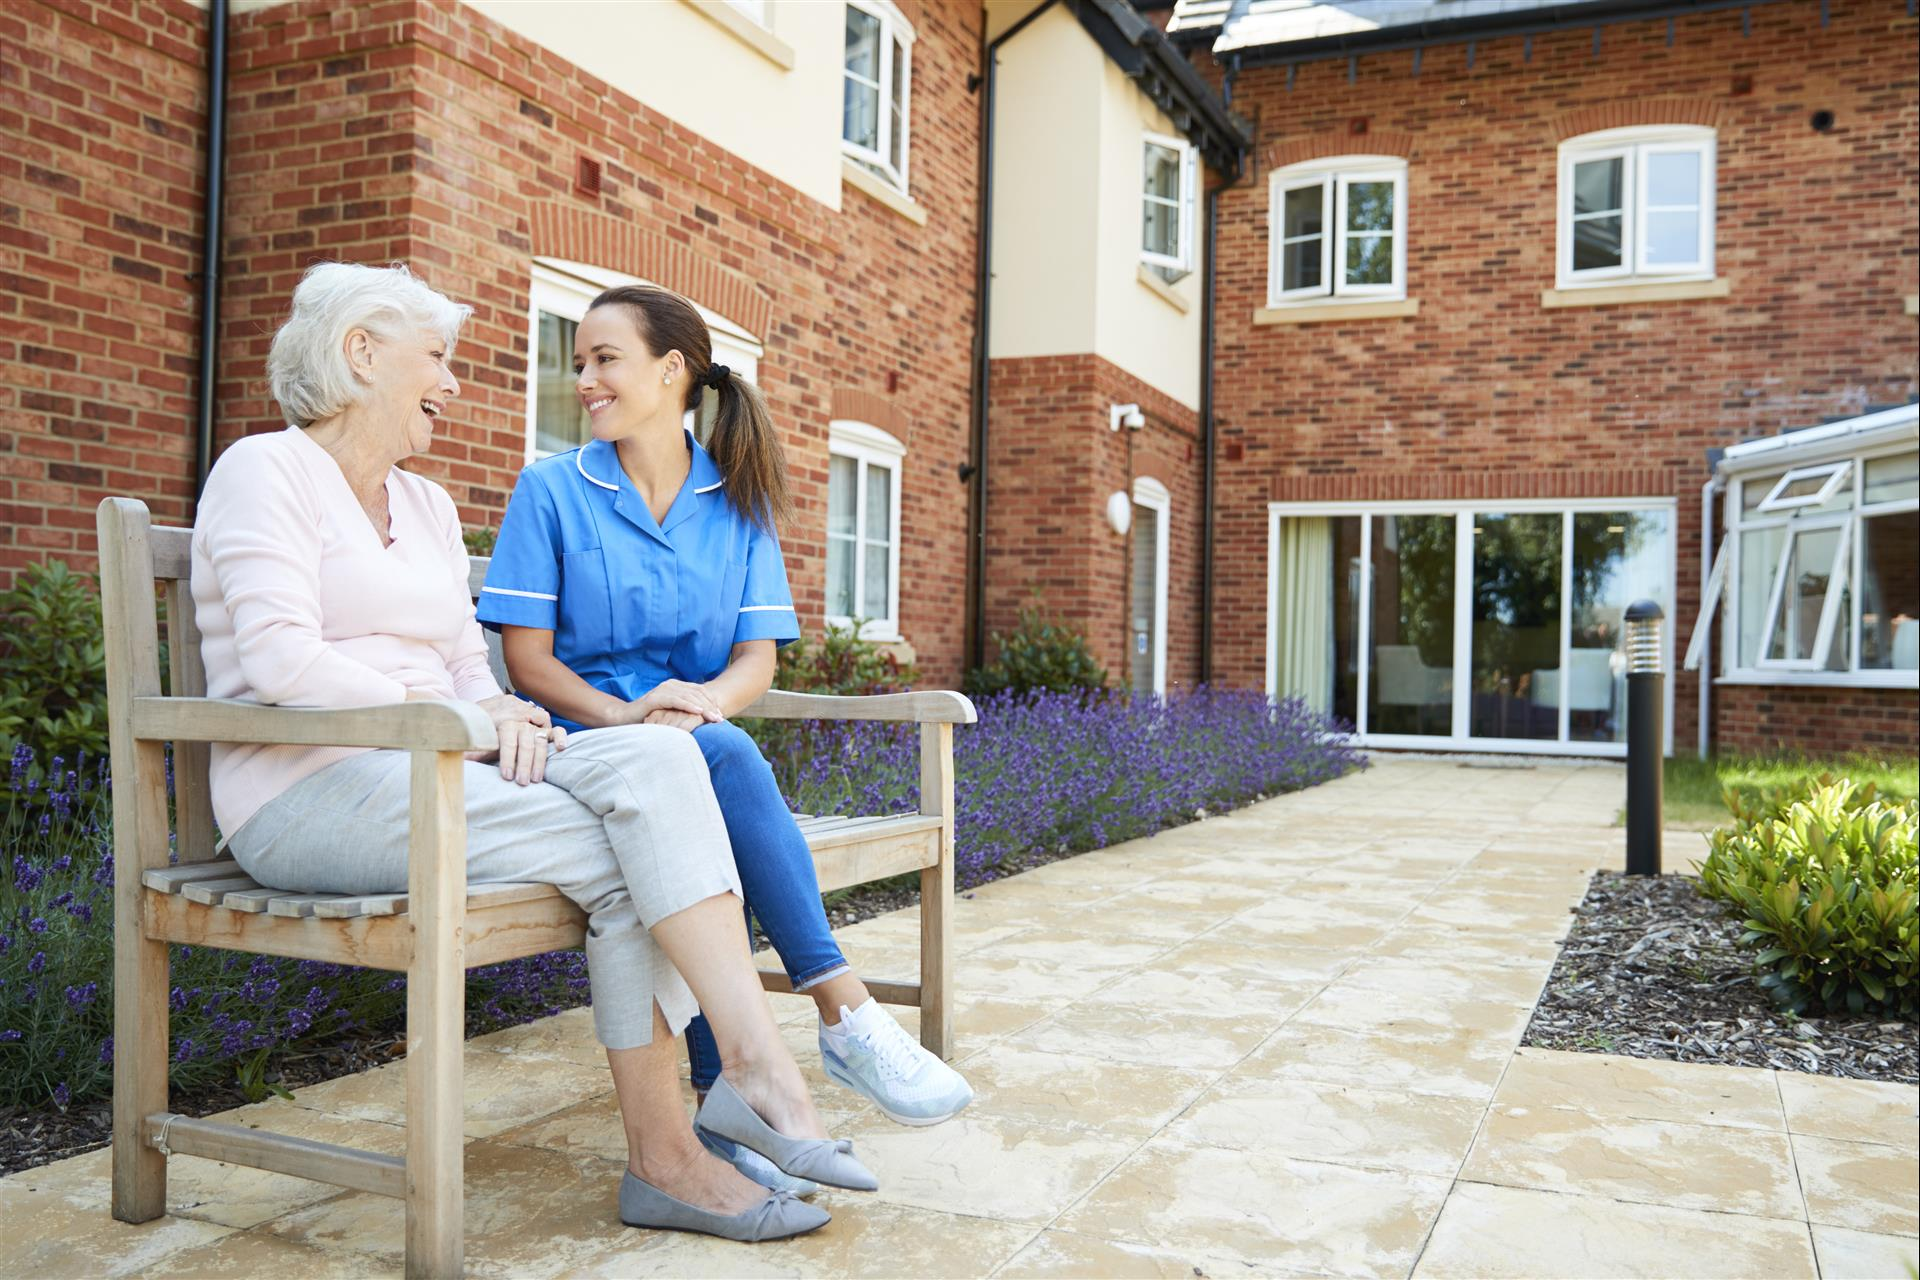 9 QUESTIONS TO ASK WHEN CHOOSING AN ASSISTED LIVING COMMUNITY